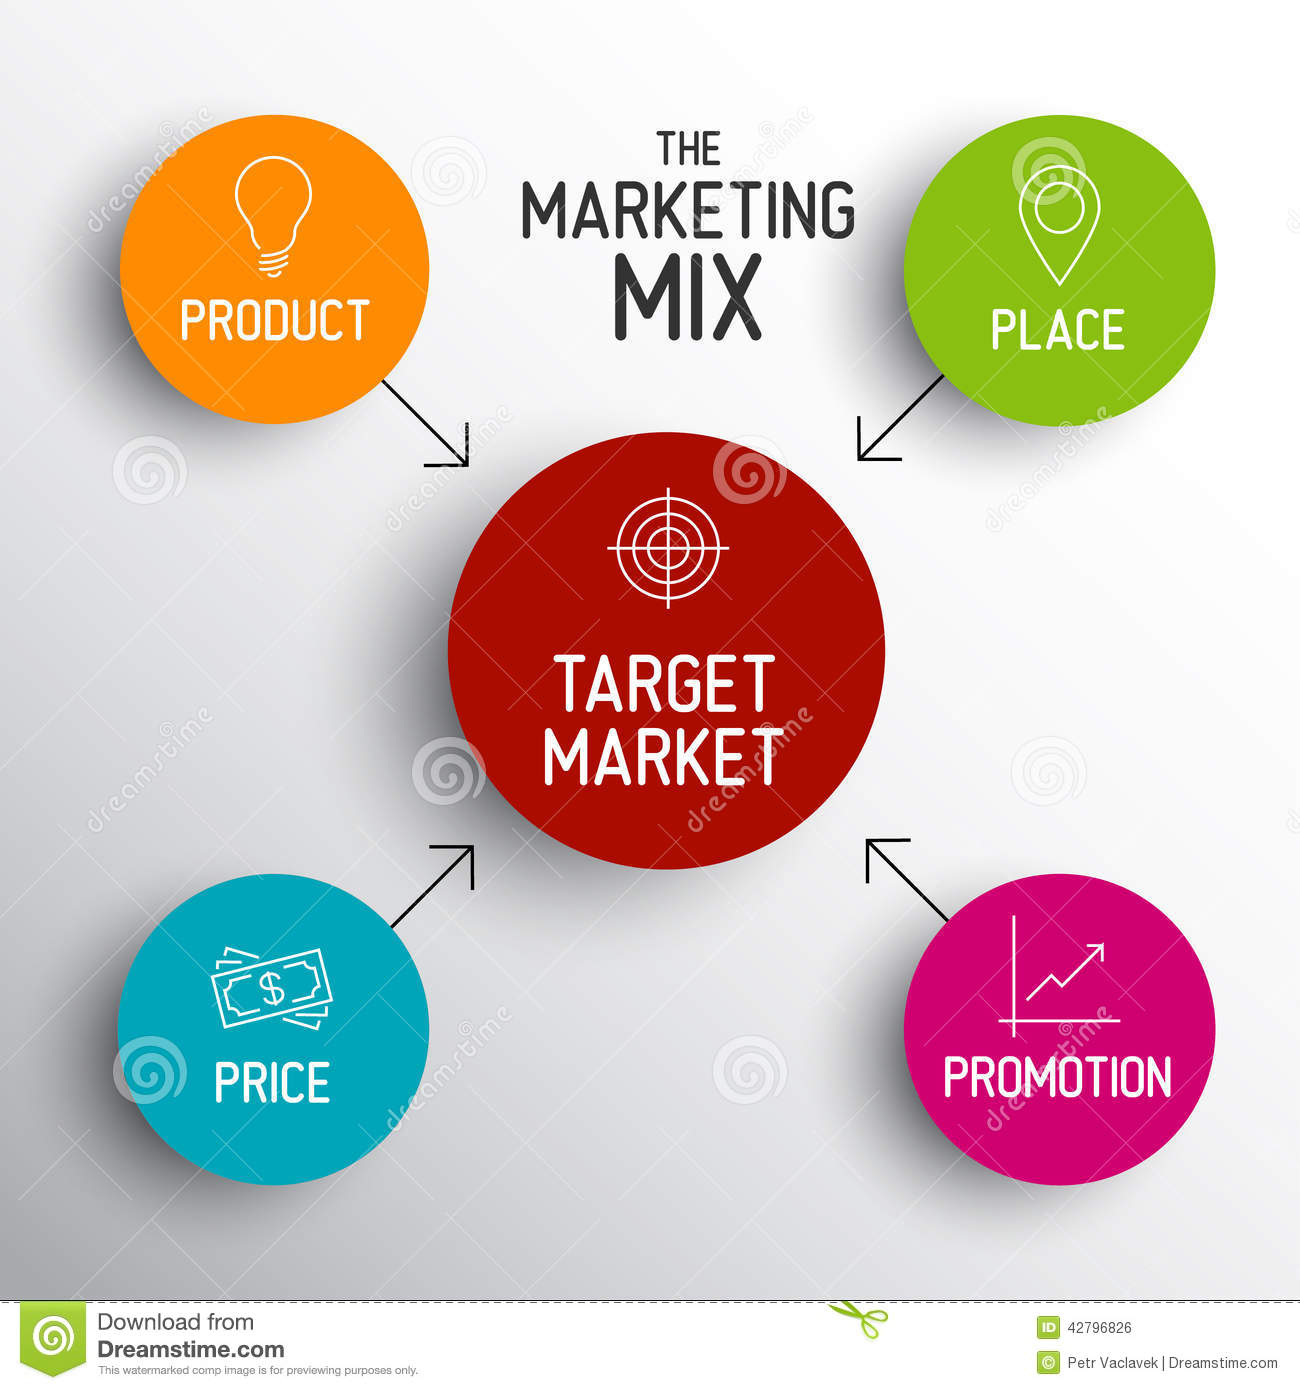 Vector 4P marketing mix model - price, product, promotion and place.